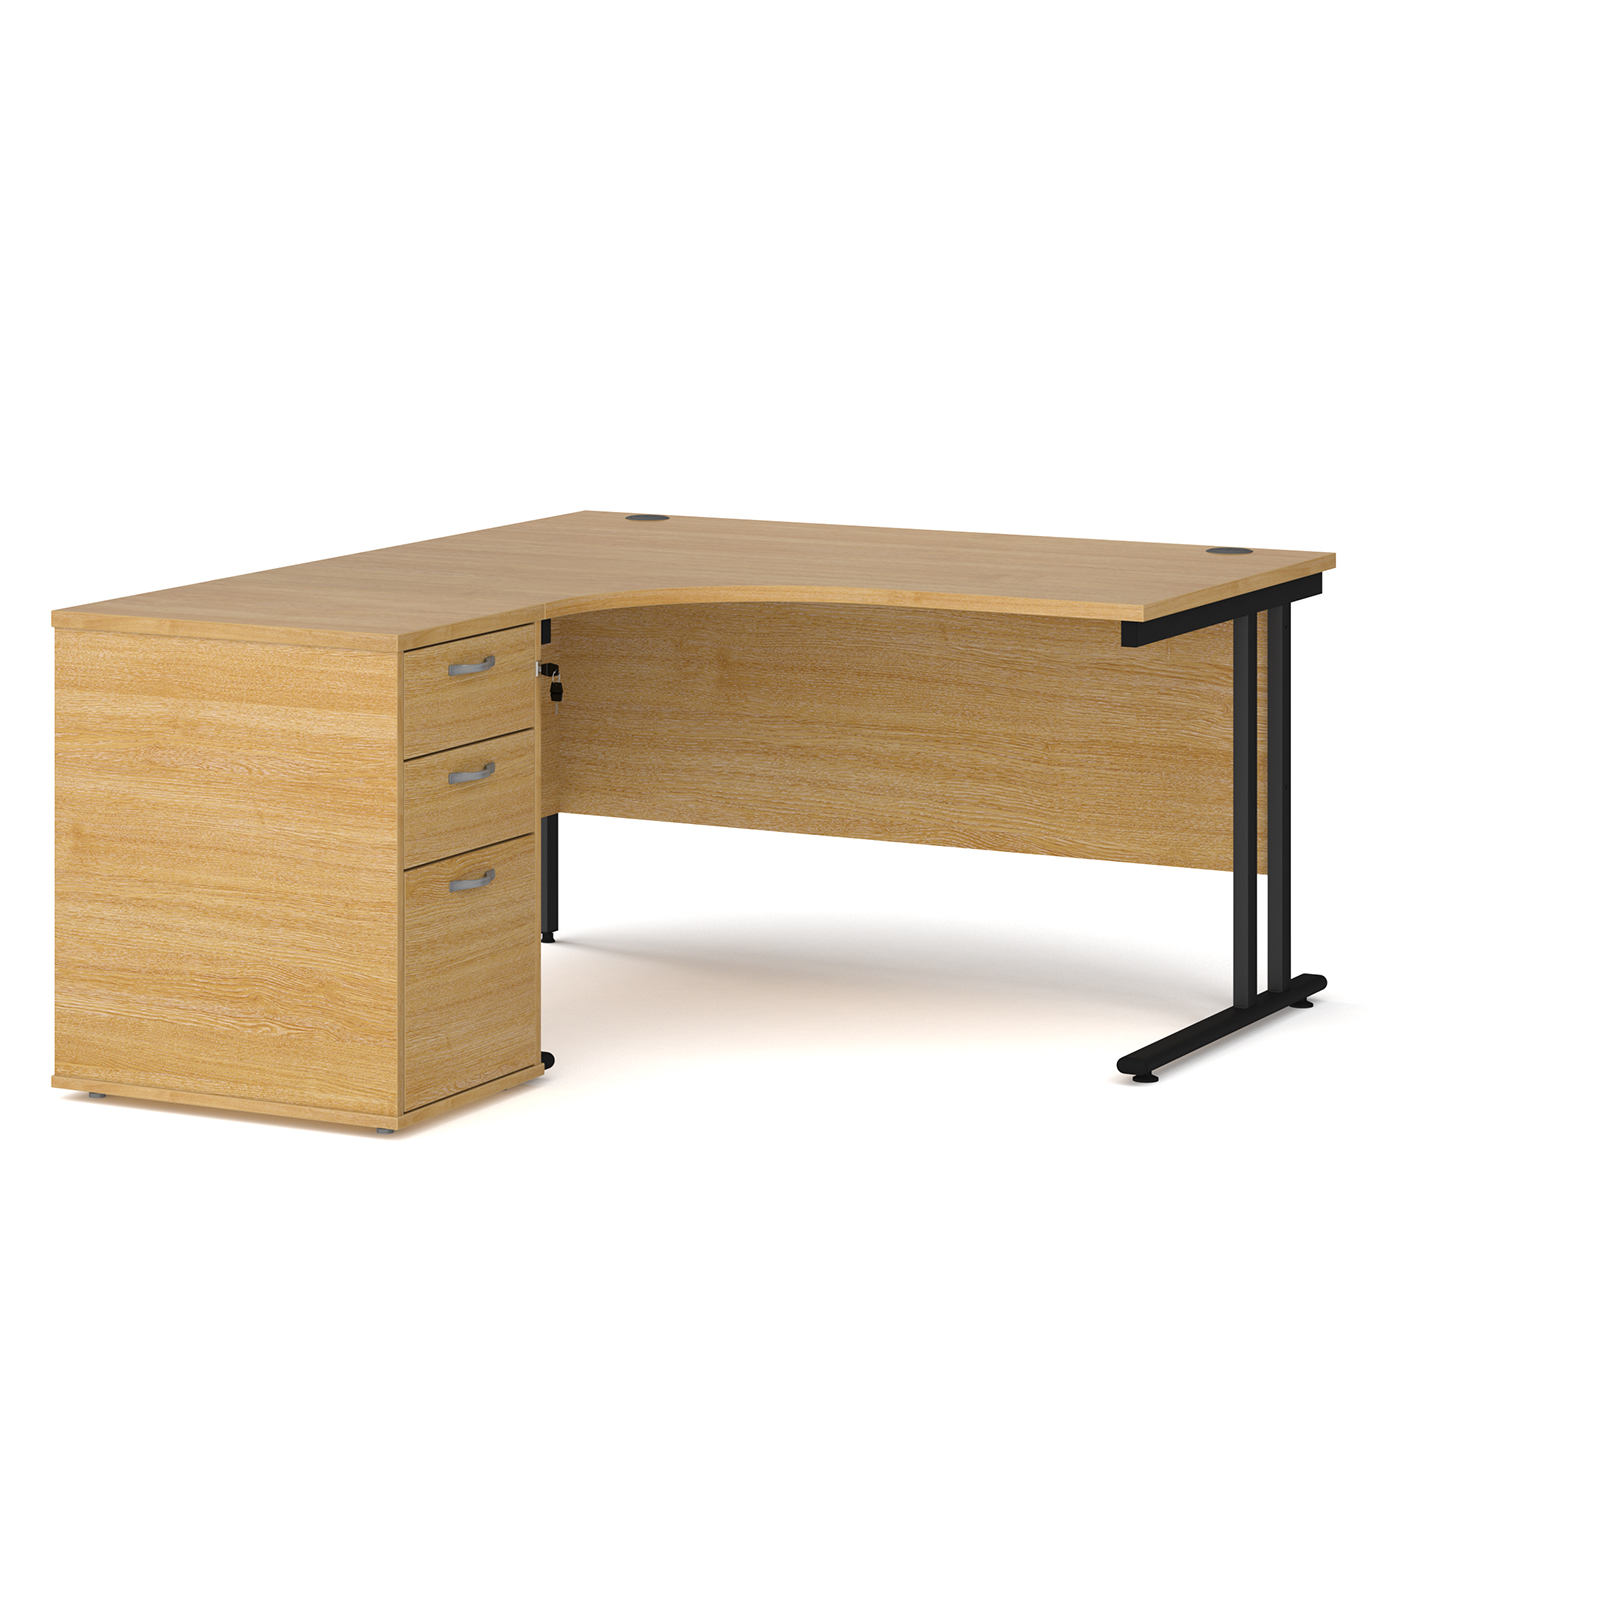 Left Handed Maestro 25 left hand ergonomic desk 1400mm with black cantilever frame and desk high pedestal - oak